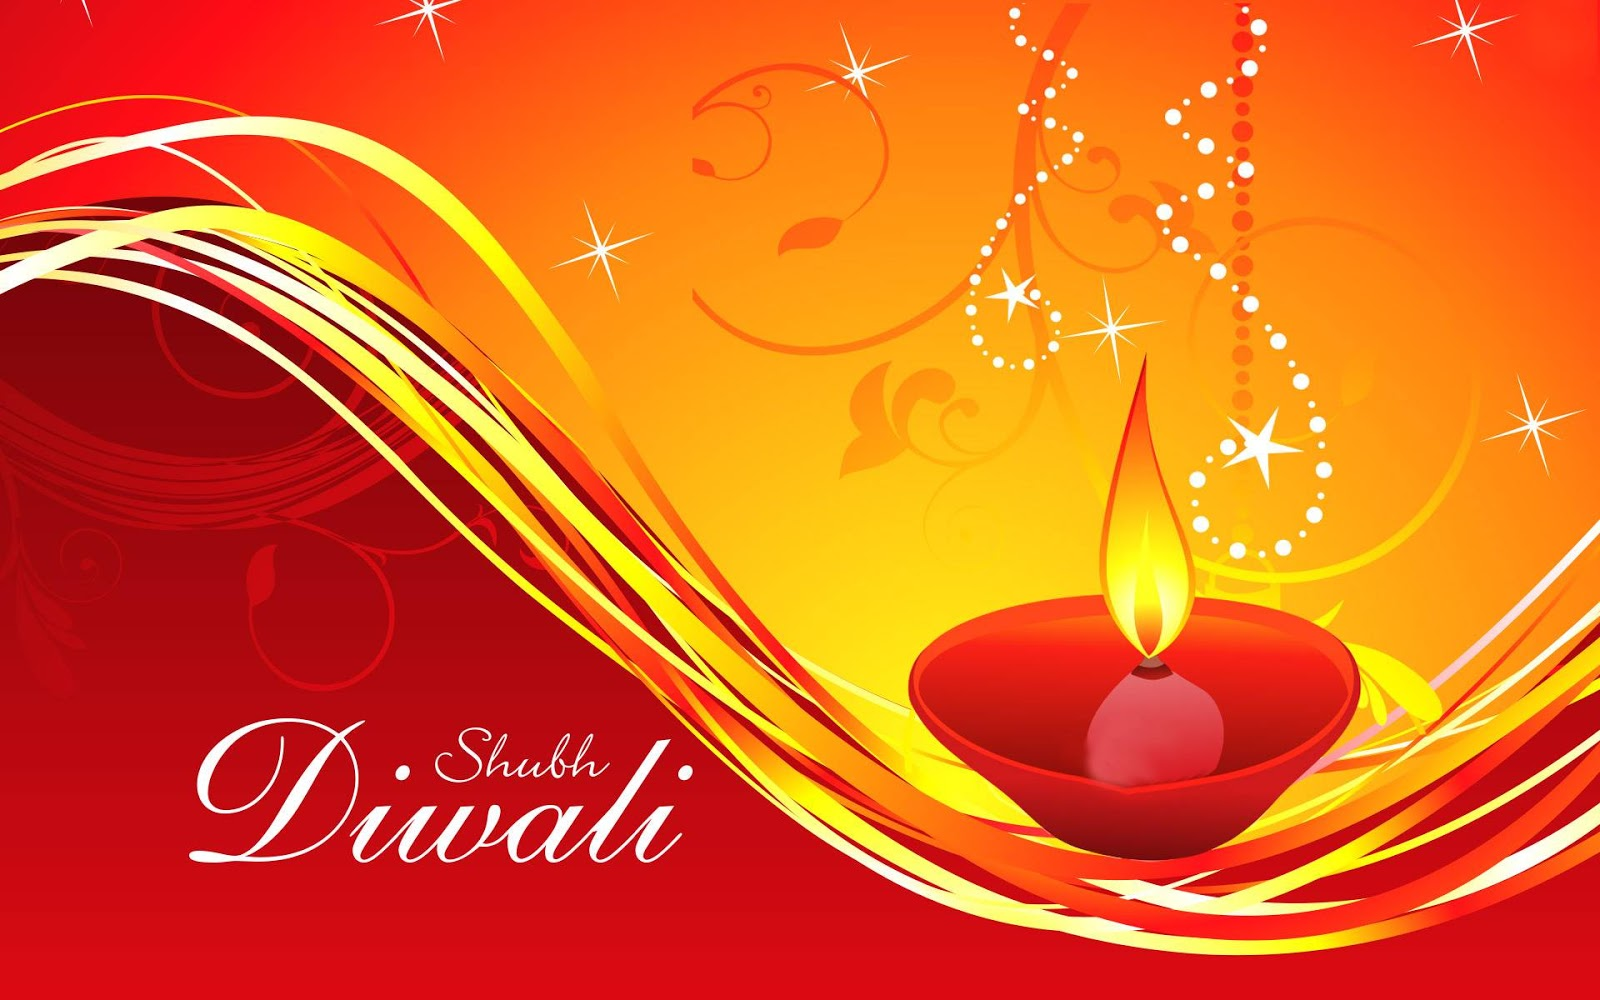 diwali latest imeges: happy diwali live wallpapers hd free download 2017